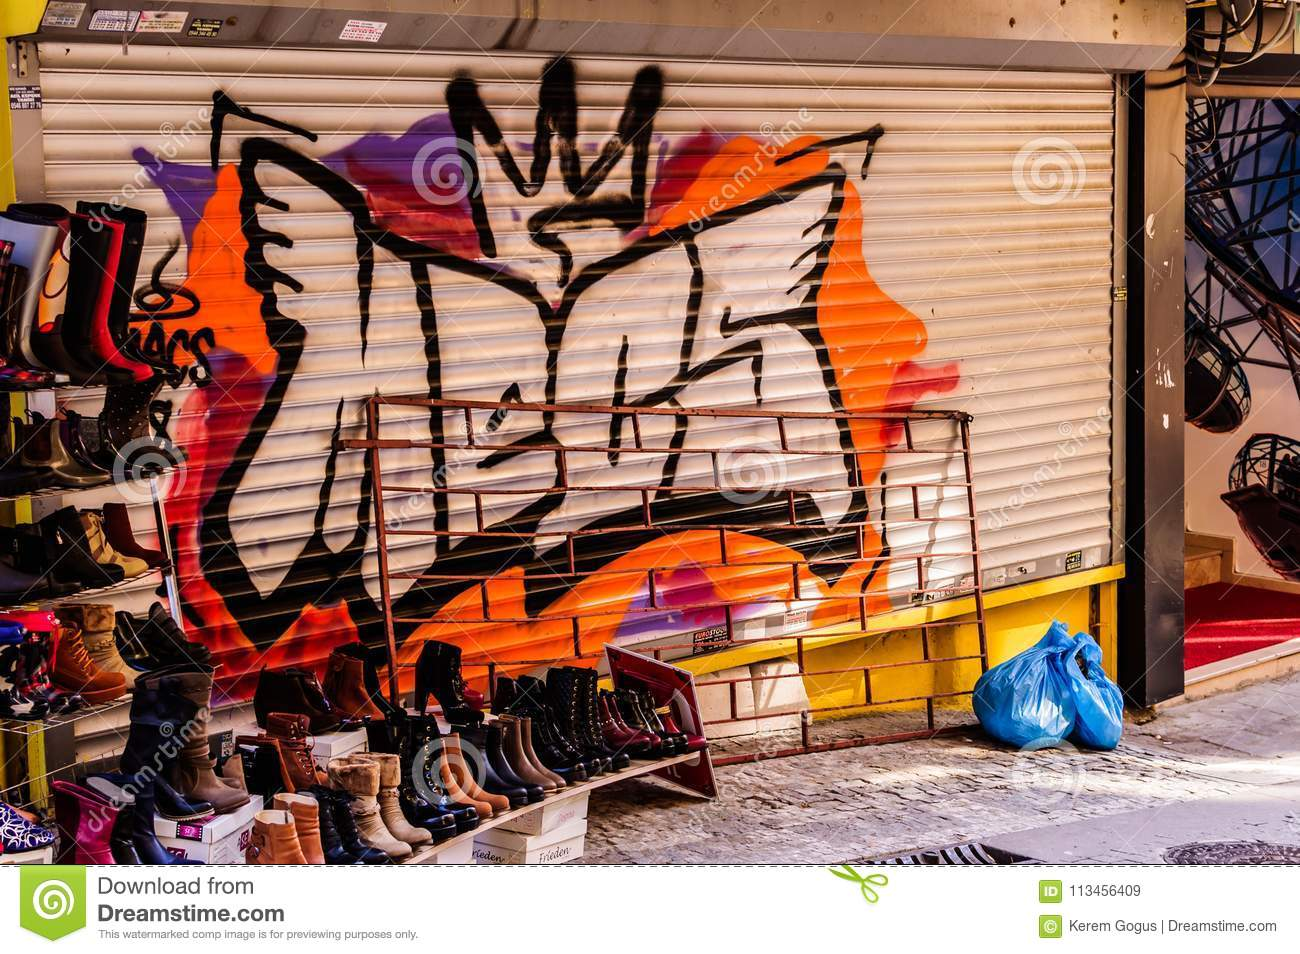 Graffiti Art On A Stores Pull Down Shutter In The Streets Of Istanbul In One Of The Central And Most Crowded Regions Of City Named Kadikoy District